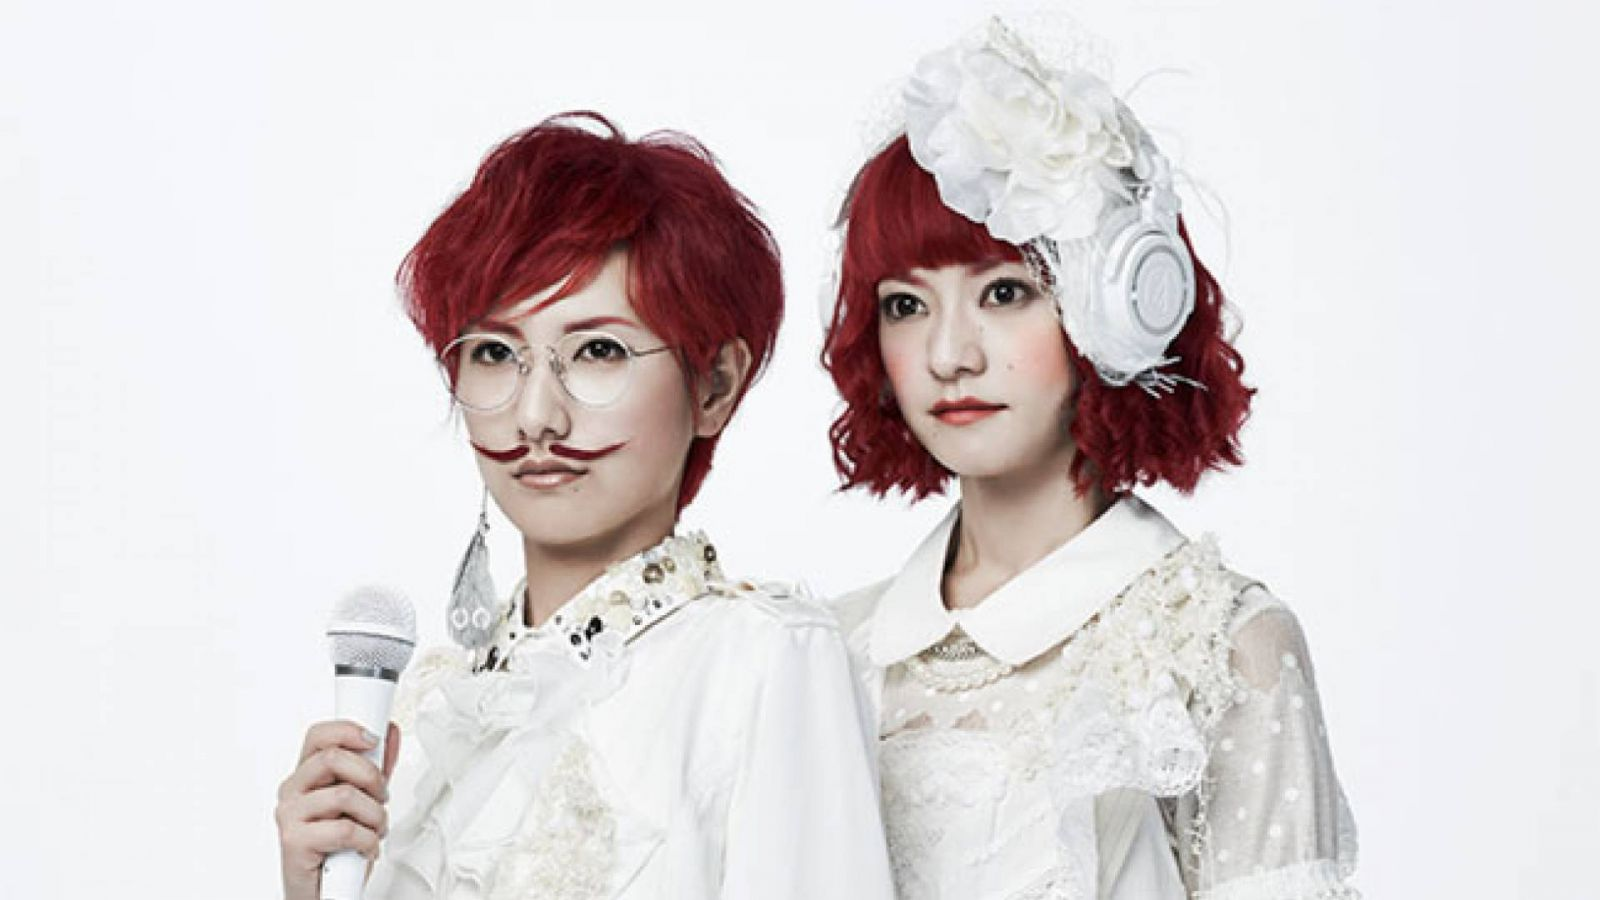 Charisma.com and Inoue Azumi to Perform at HYPER JAPAN © Lastrum Music Entertaniment Inc. All rights reserved.